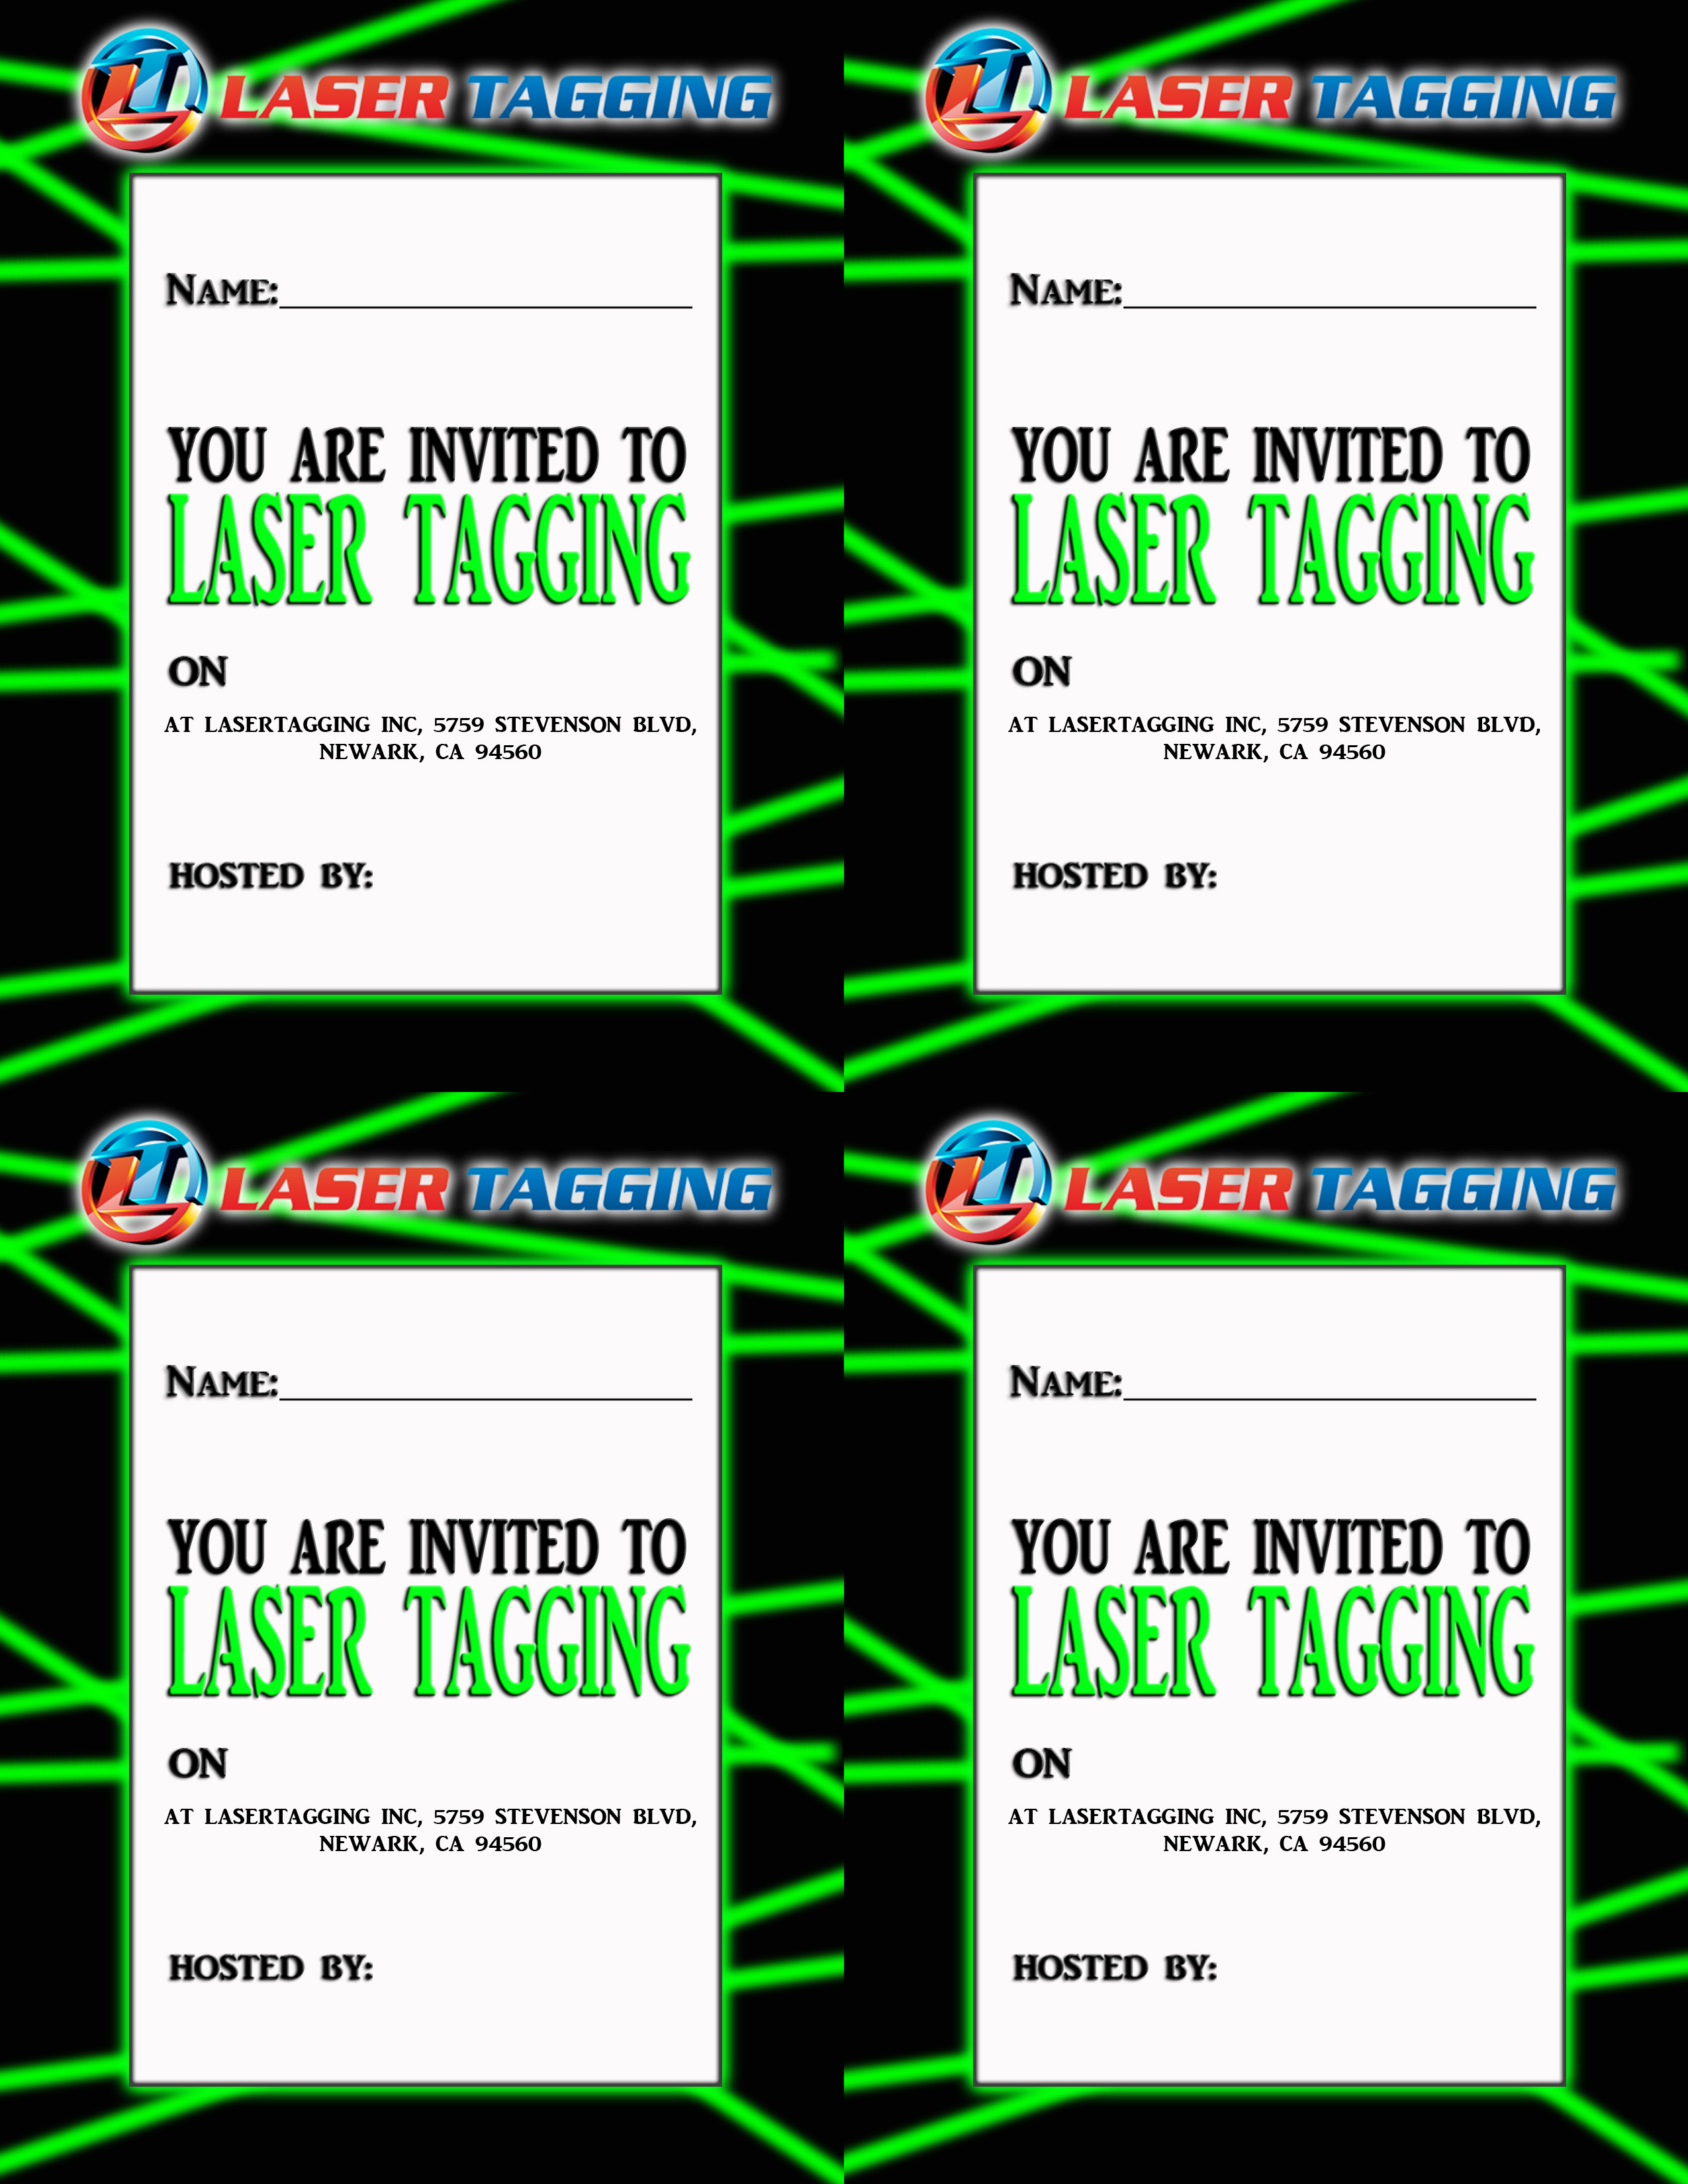 laser tag birthday invitations free printable ; 89afef530e9af78cba45fa27959fde76